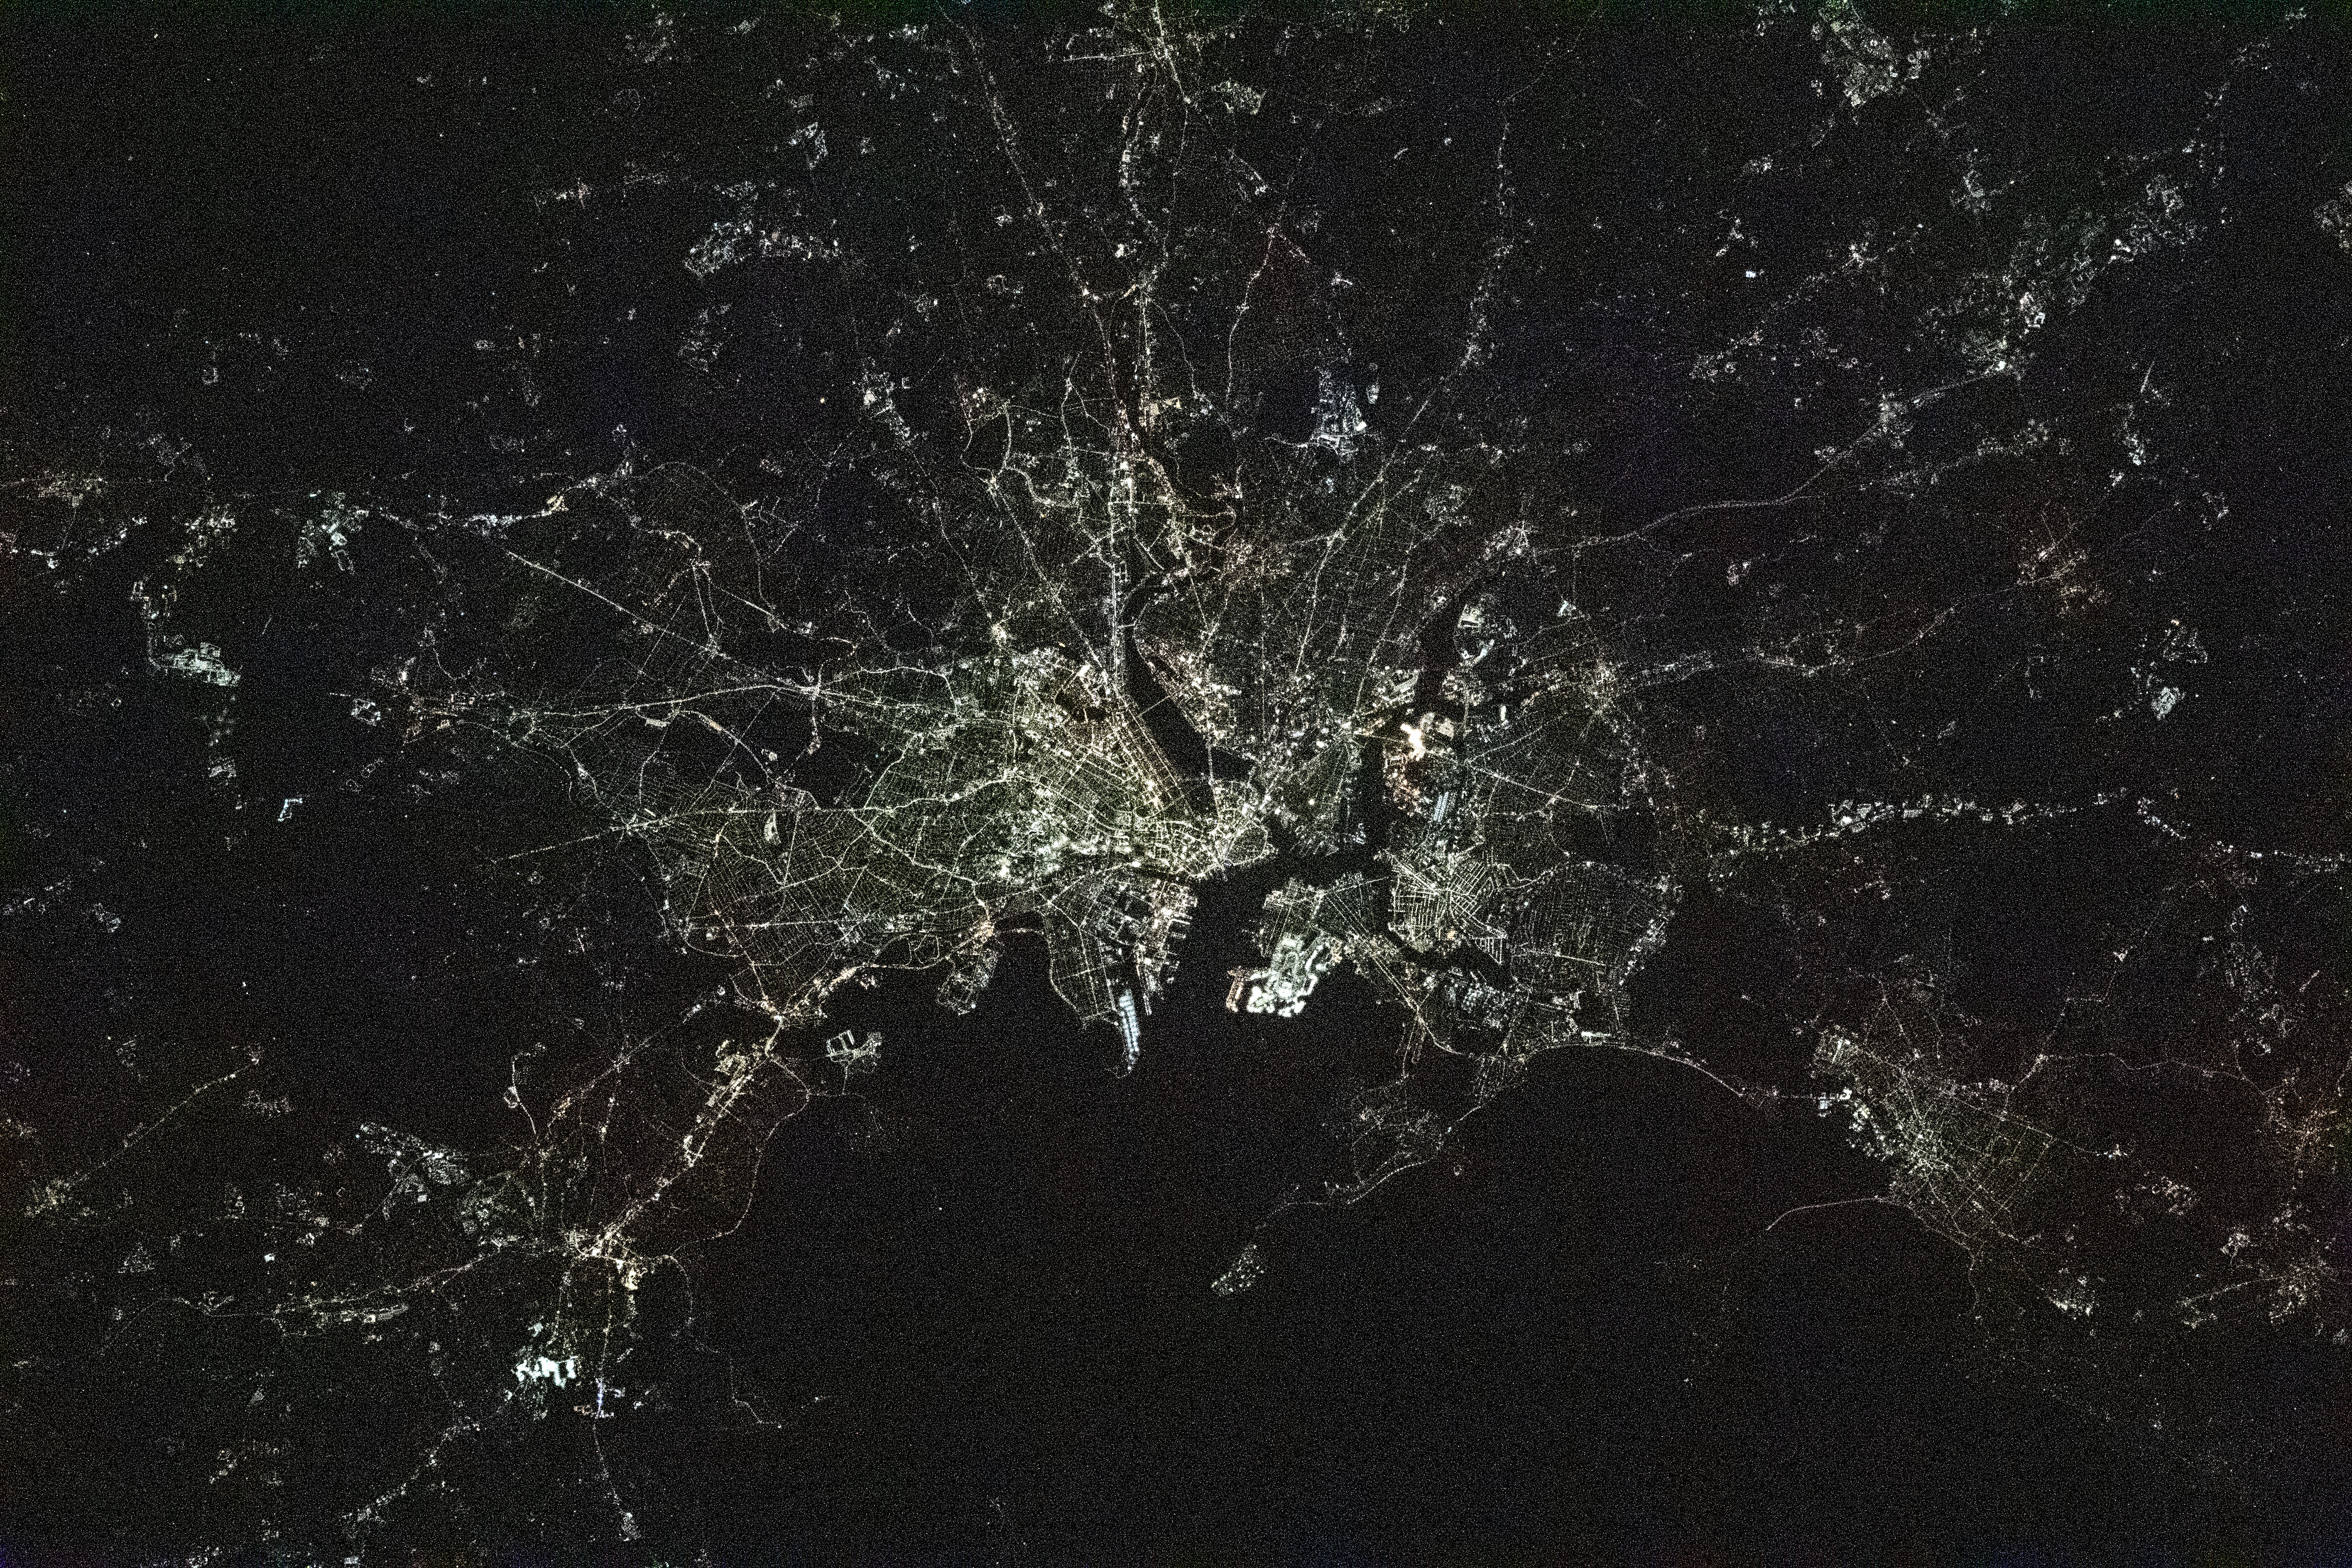 Behold: The City of Boston at Night!